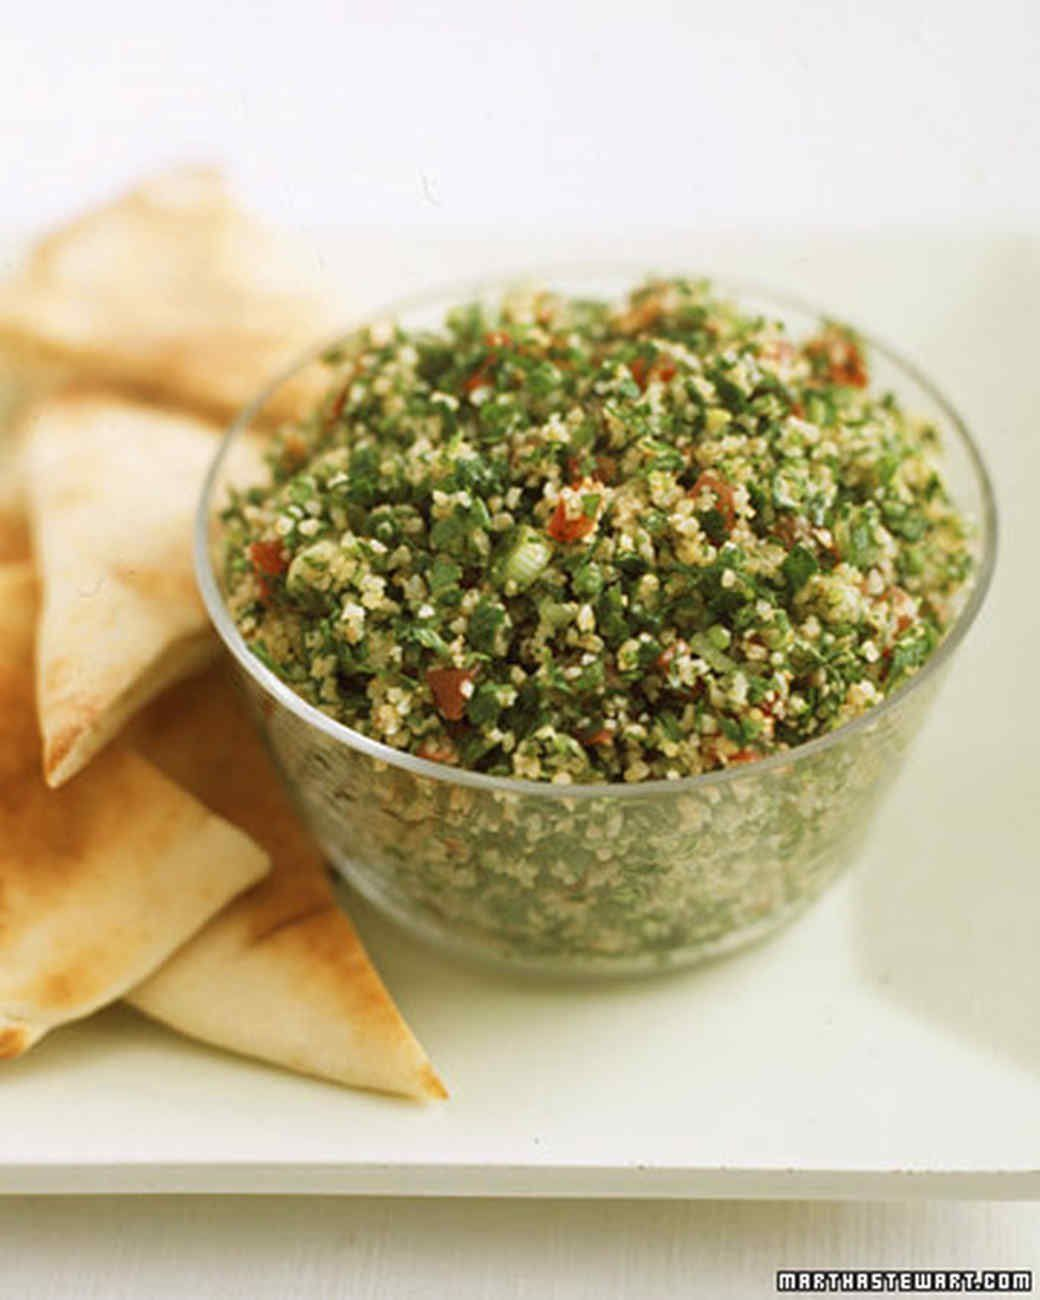 Parsley Is Always A Main Ingredient In Tabbouleh, A Middle